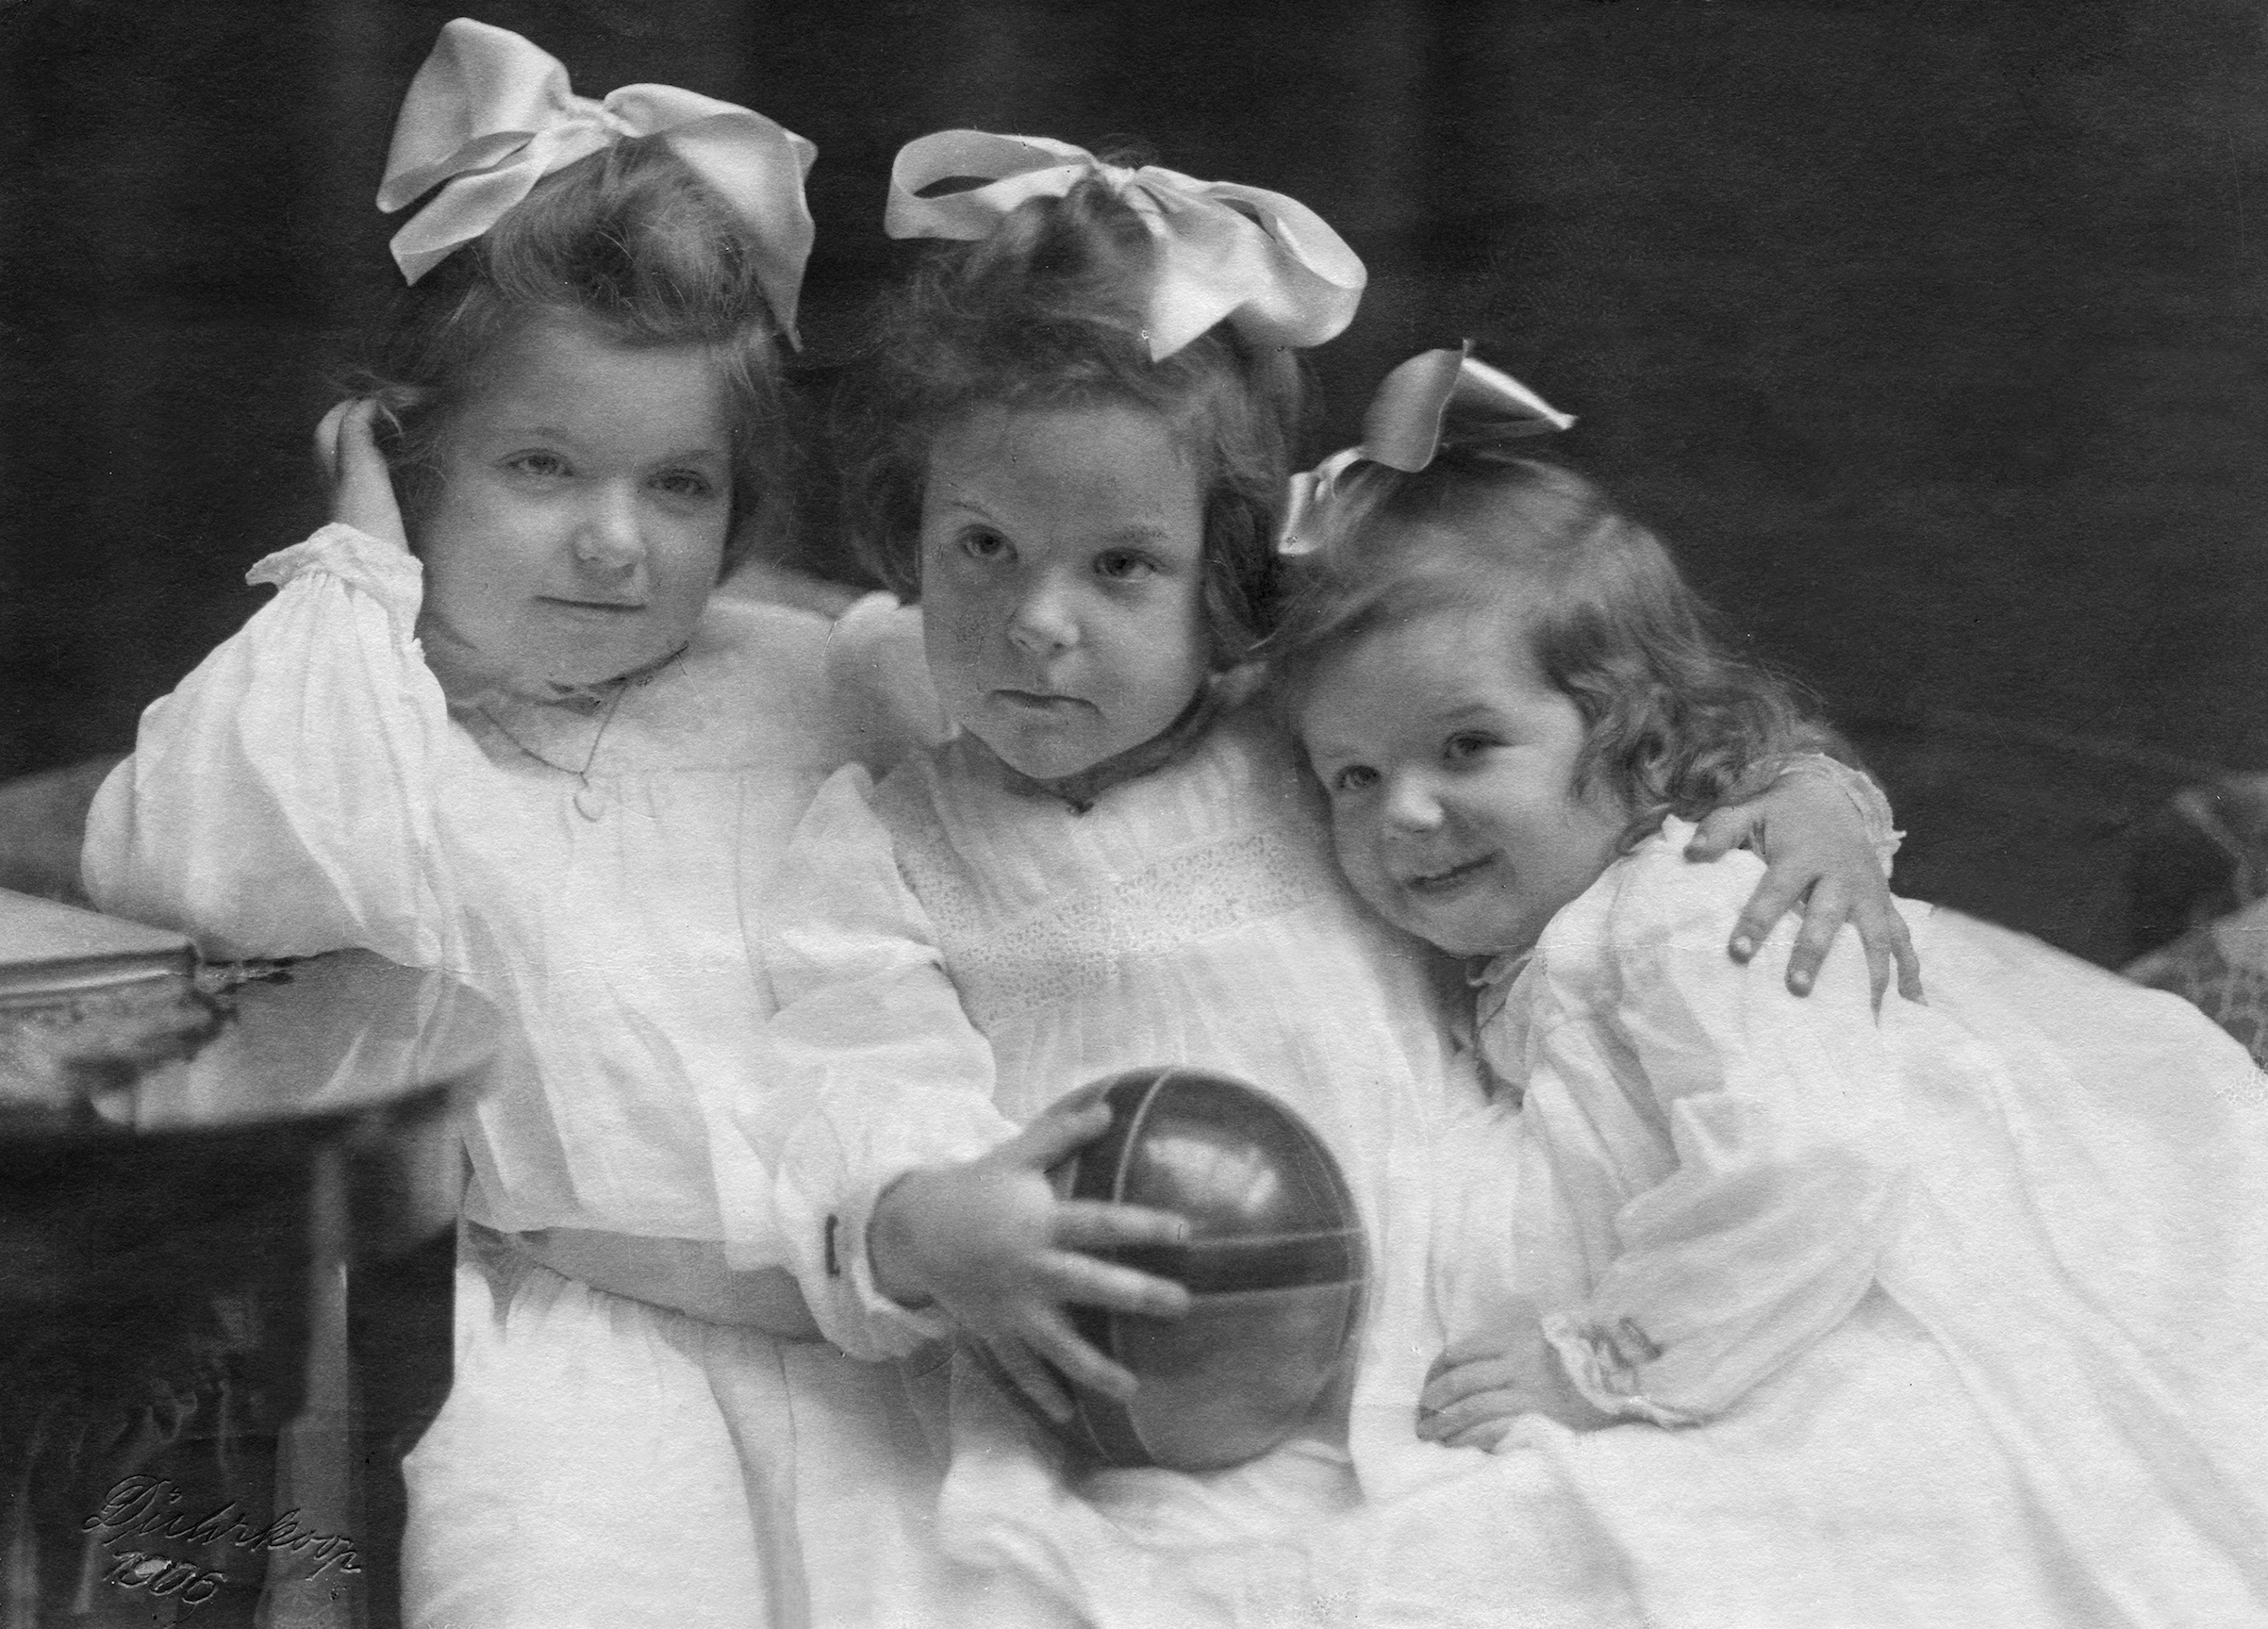 Three sisters with hair bows, 1906.